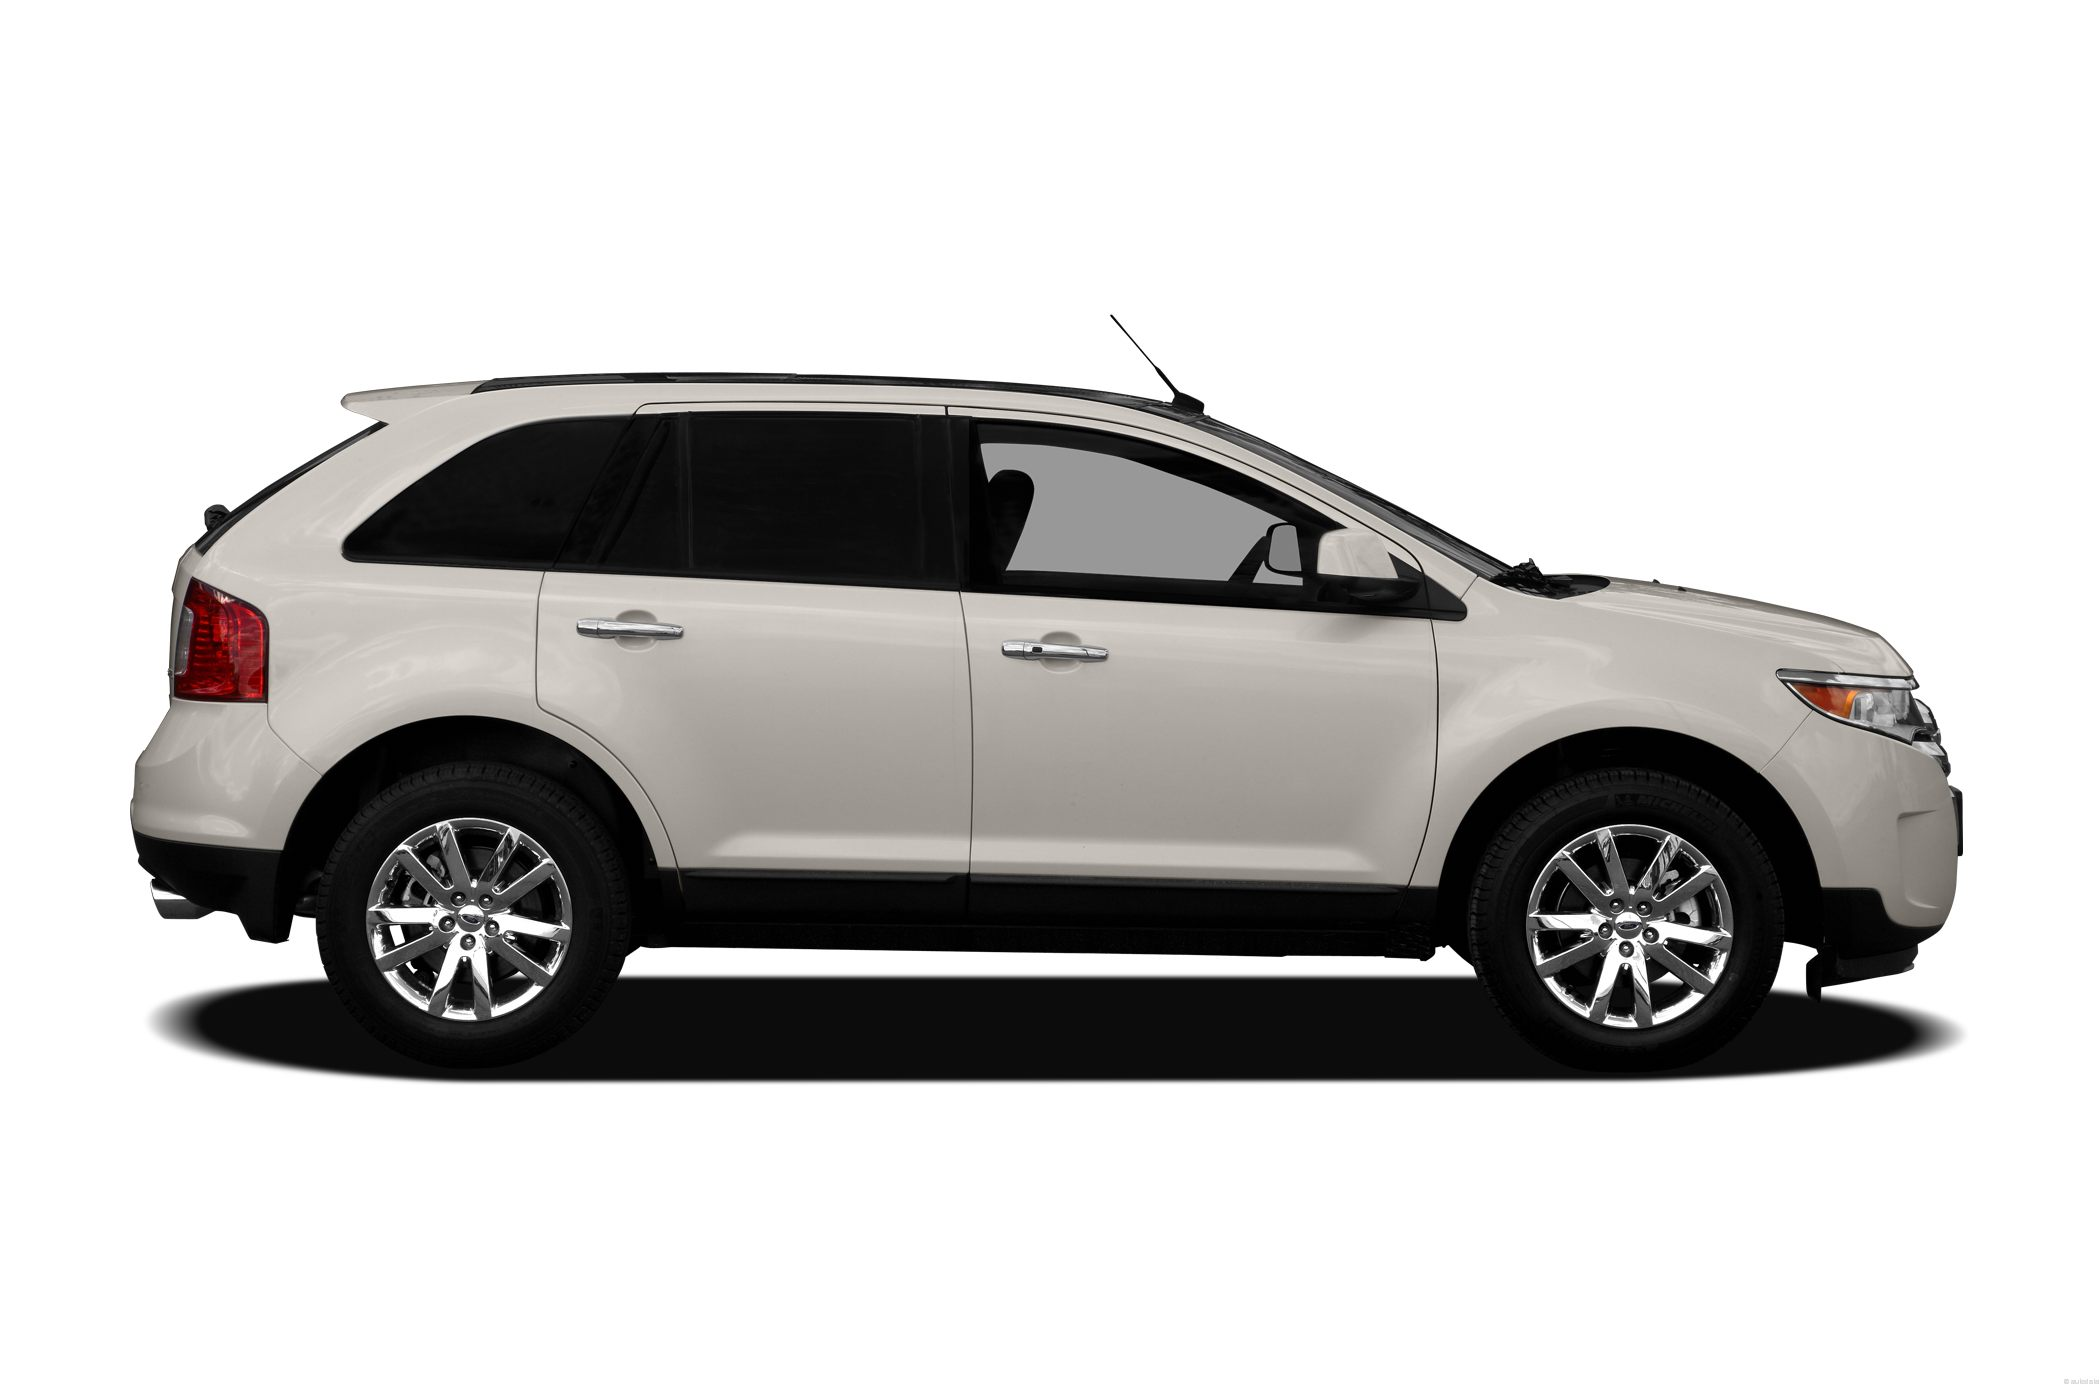 2014 ford edge clipart vector transparent download Free Download Of Ford Edge Icon Clipart #28041 - Free Icons and PNG ... vector transparent download